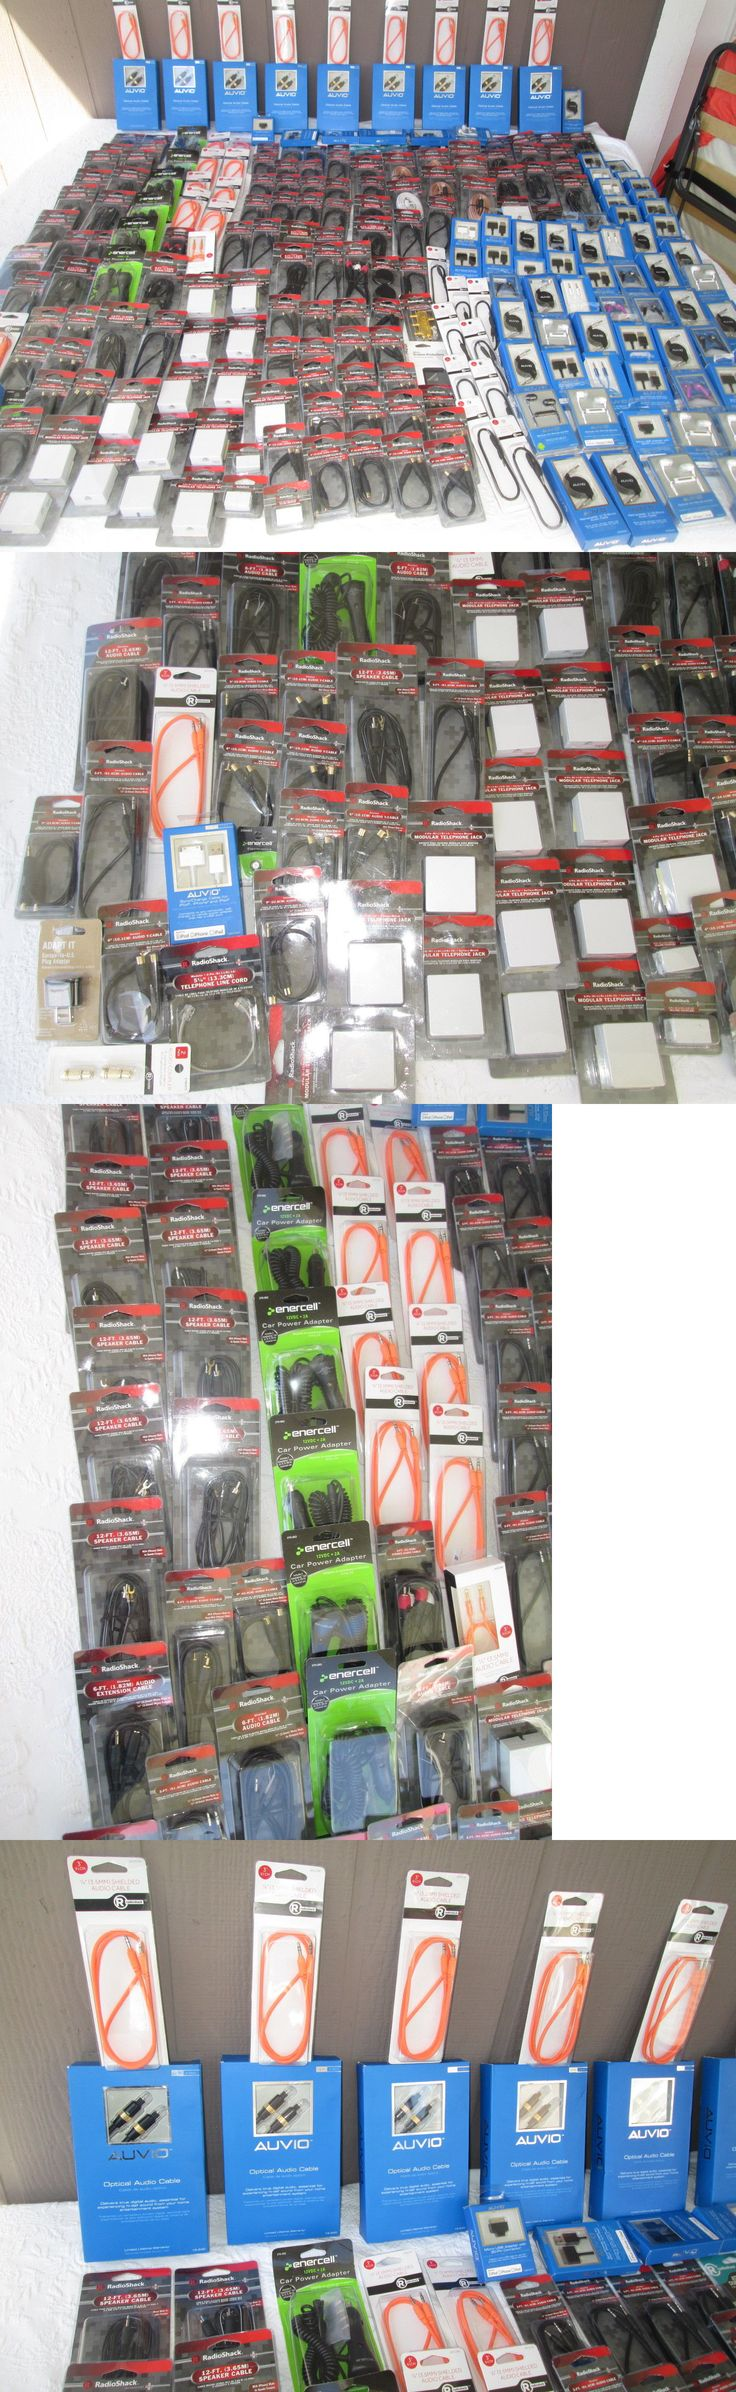 Other Consumer Electronic Lots: Wholesale Lot Of Radio Shack Merchandise 240 Pcs. For Retail New Jp 18 -> BUY IT NOW ONLY: $275.0 on eBay!